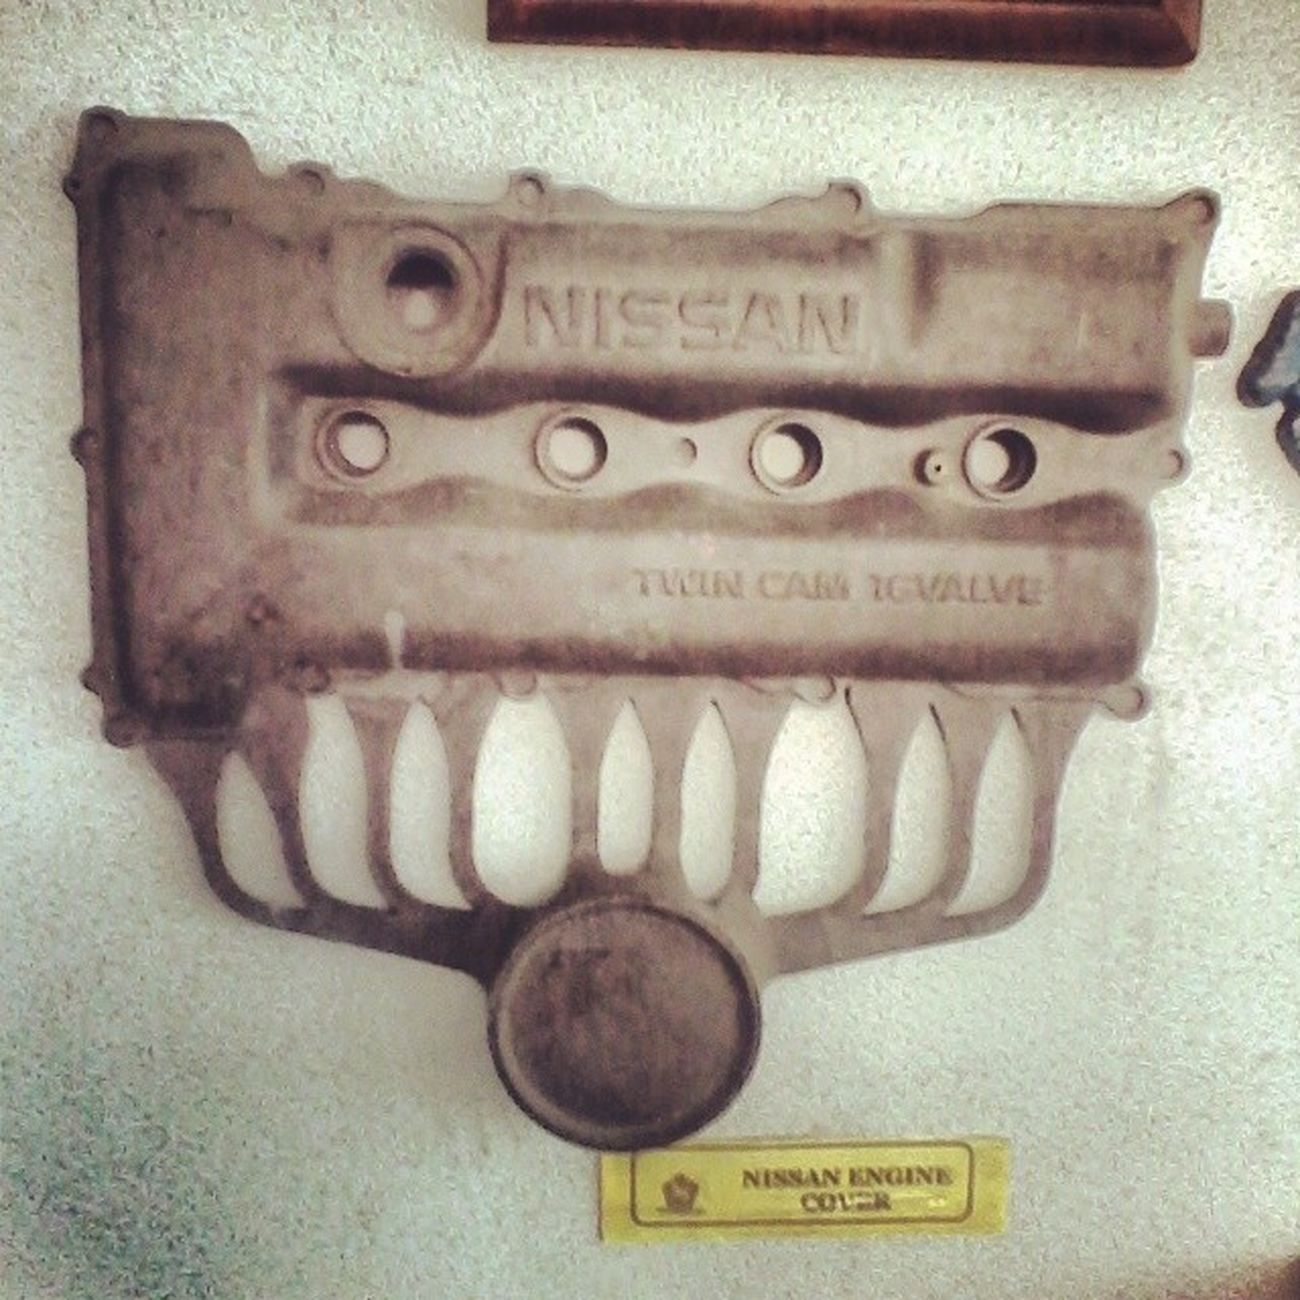 Nissan Engine made by Foundri Uikmlumut :3